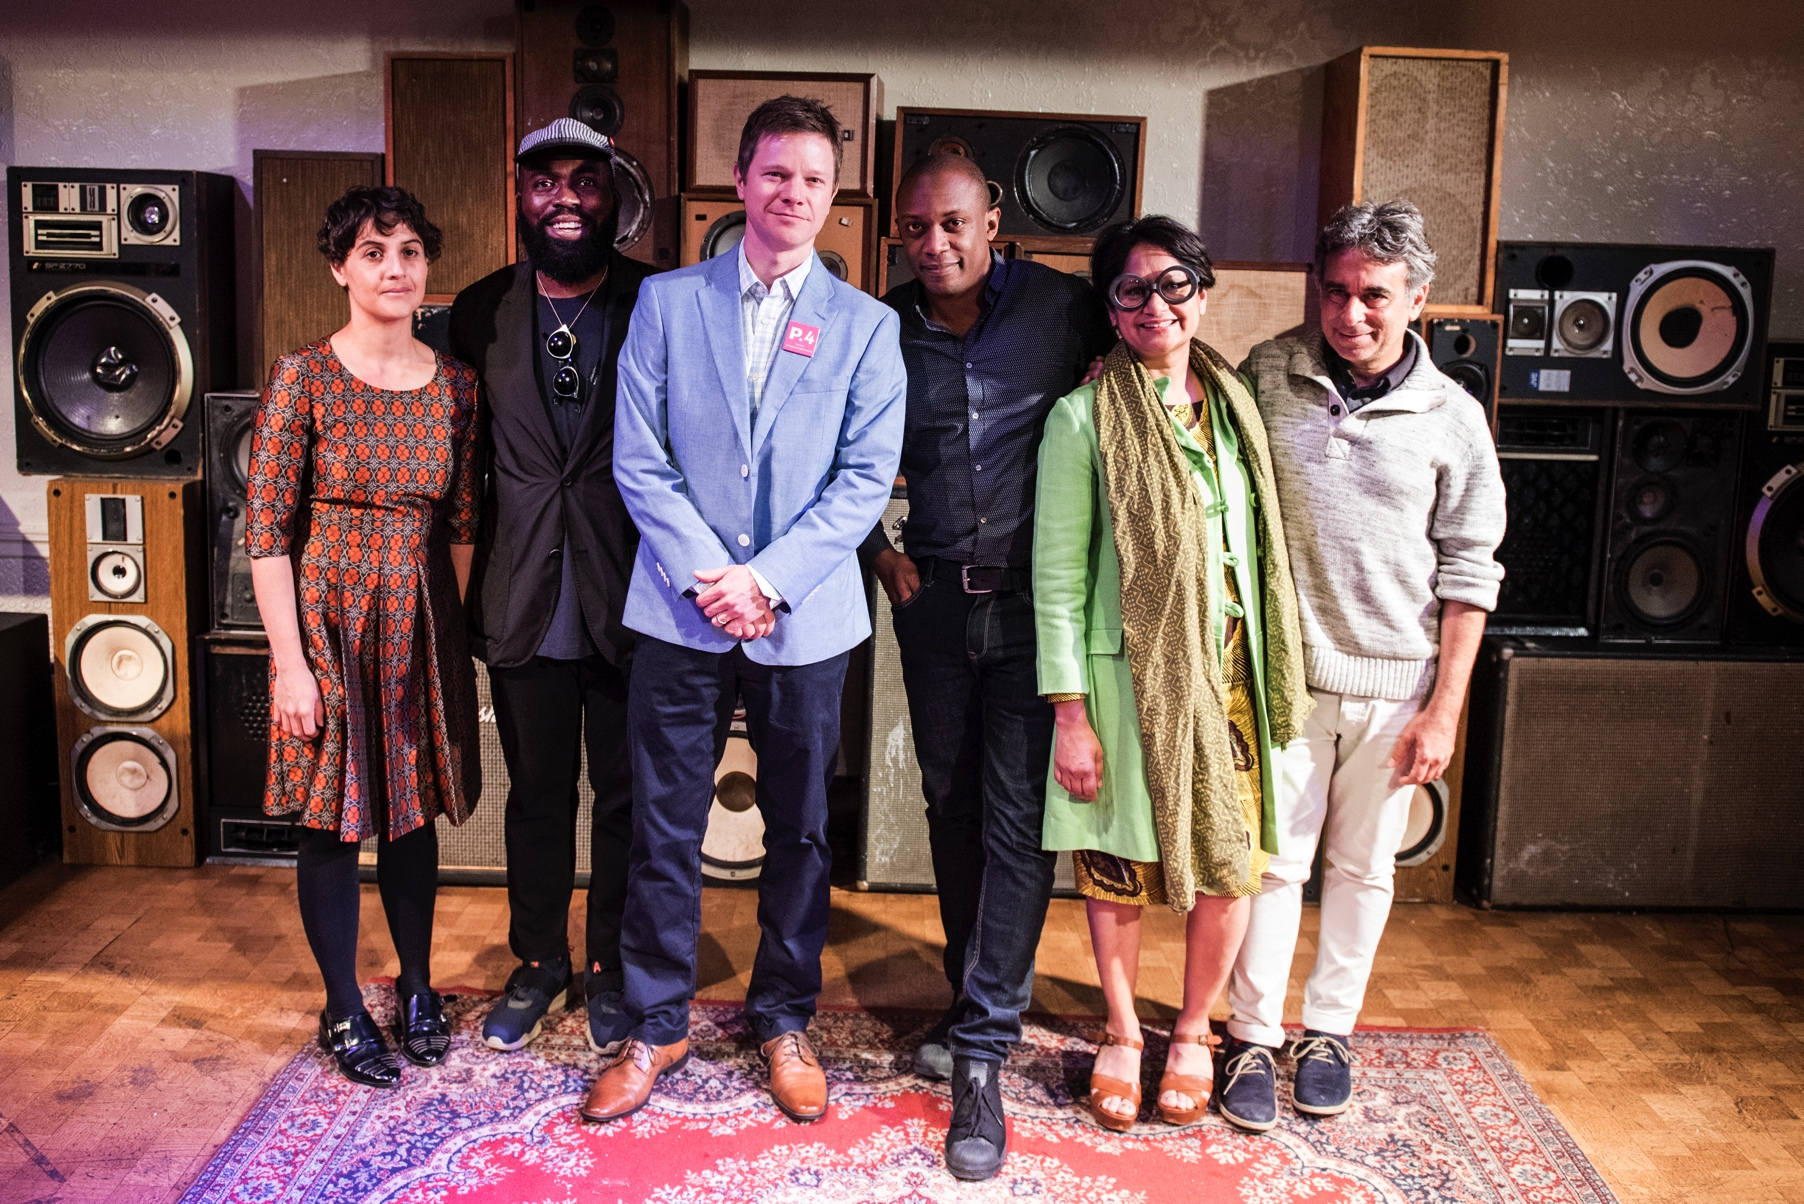 From left to right: P.4 Artists Maria Berrio and Derrick Adams with P.4 Artistic Director Trevor Schoonmaker, P.4 Artists Hank Willis Thomas and Rina Banerjee, and P.4 Artistic Director's Council Member Omar López-Chahoud.